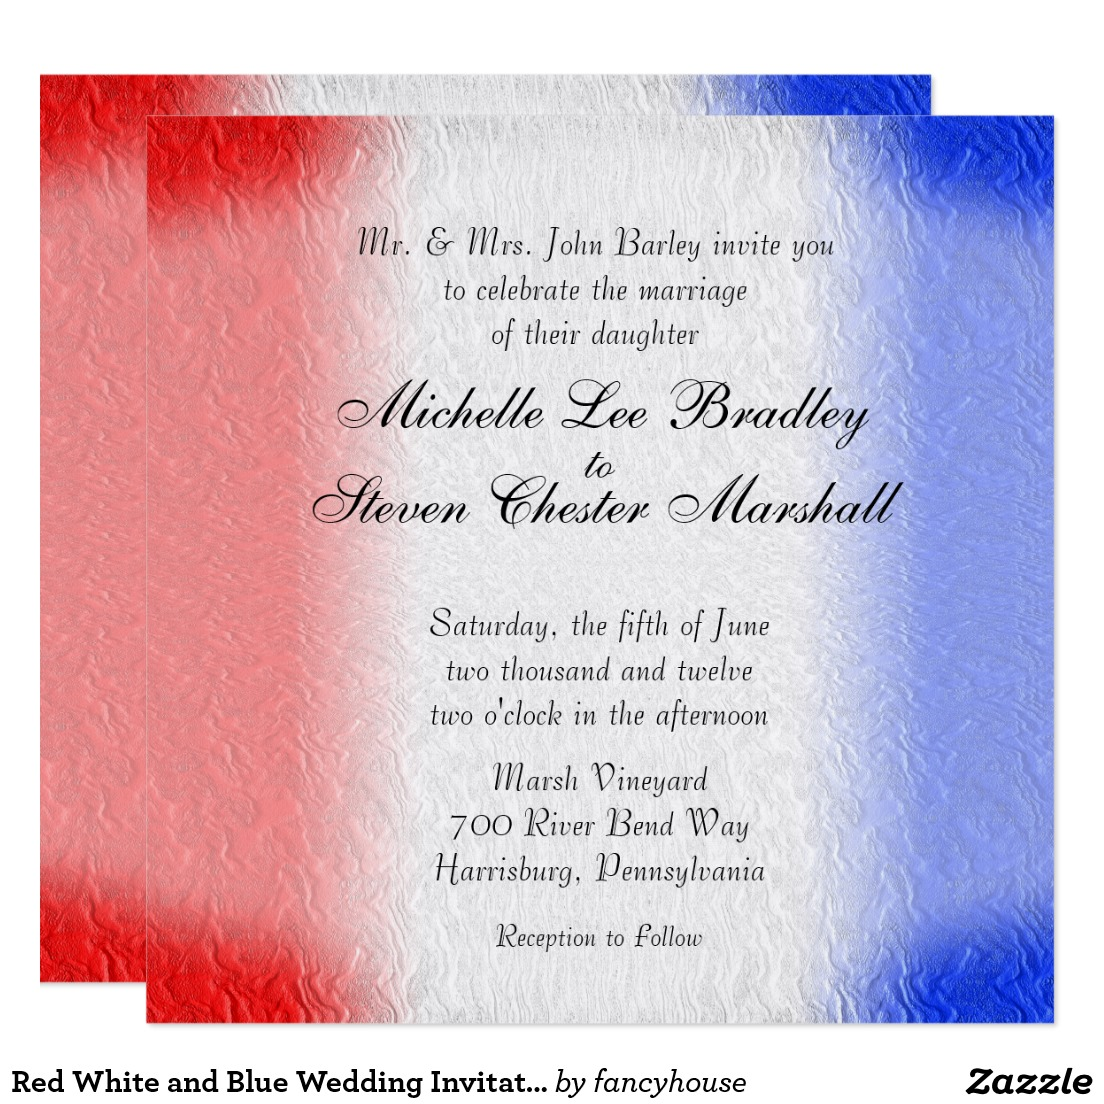 Red White and Blue Wedding Invitations